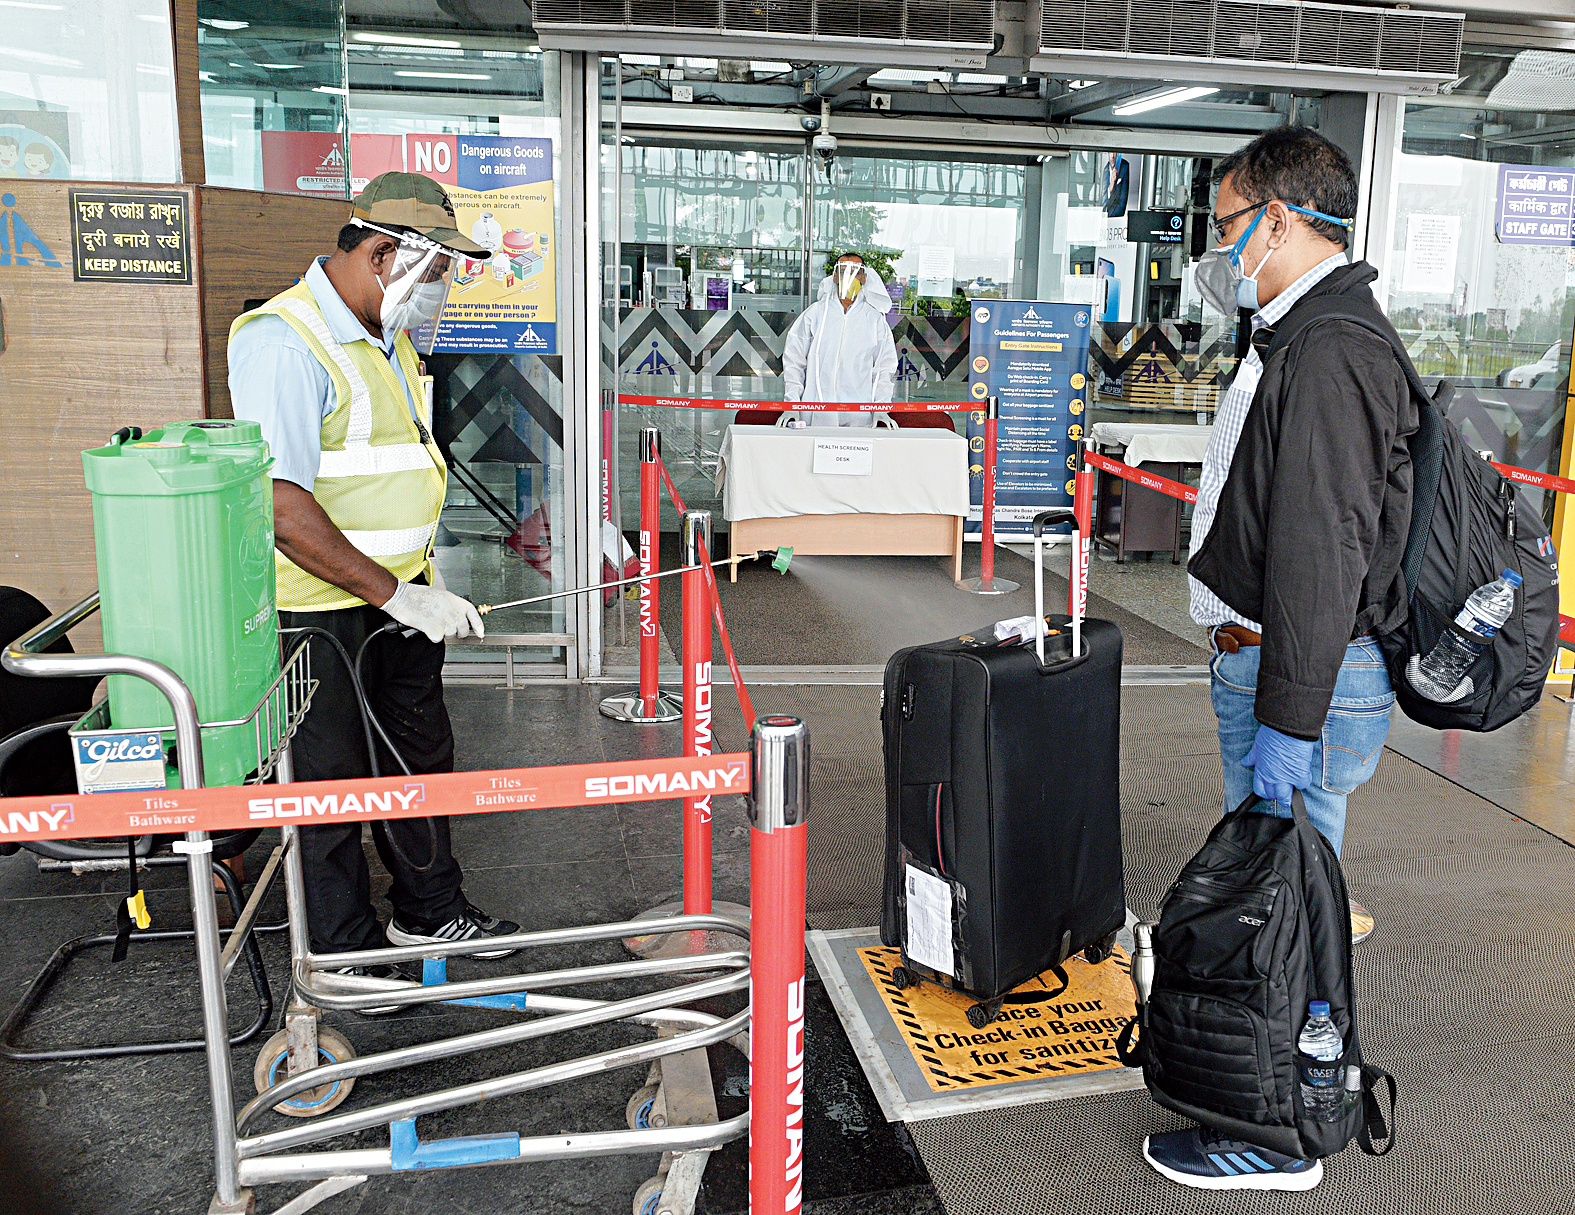 Sanitiser spray awaits passenger's bags at the entrance of the terminal. Both check-in and cabin baggage are sanitised.